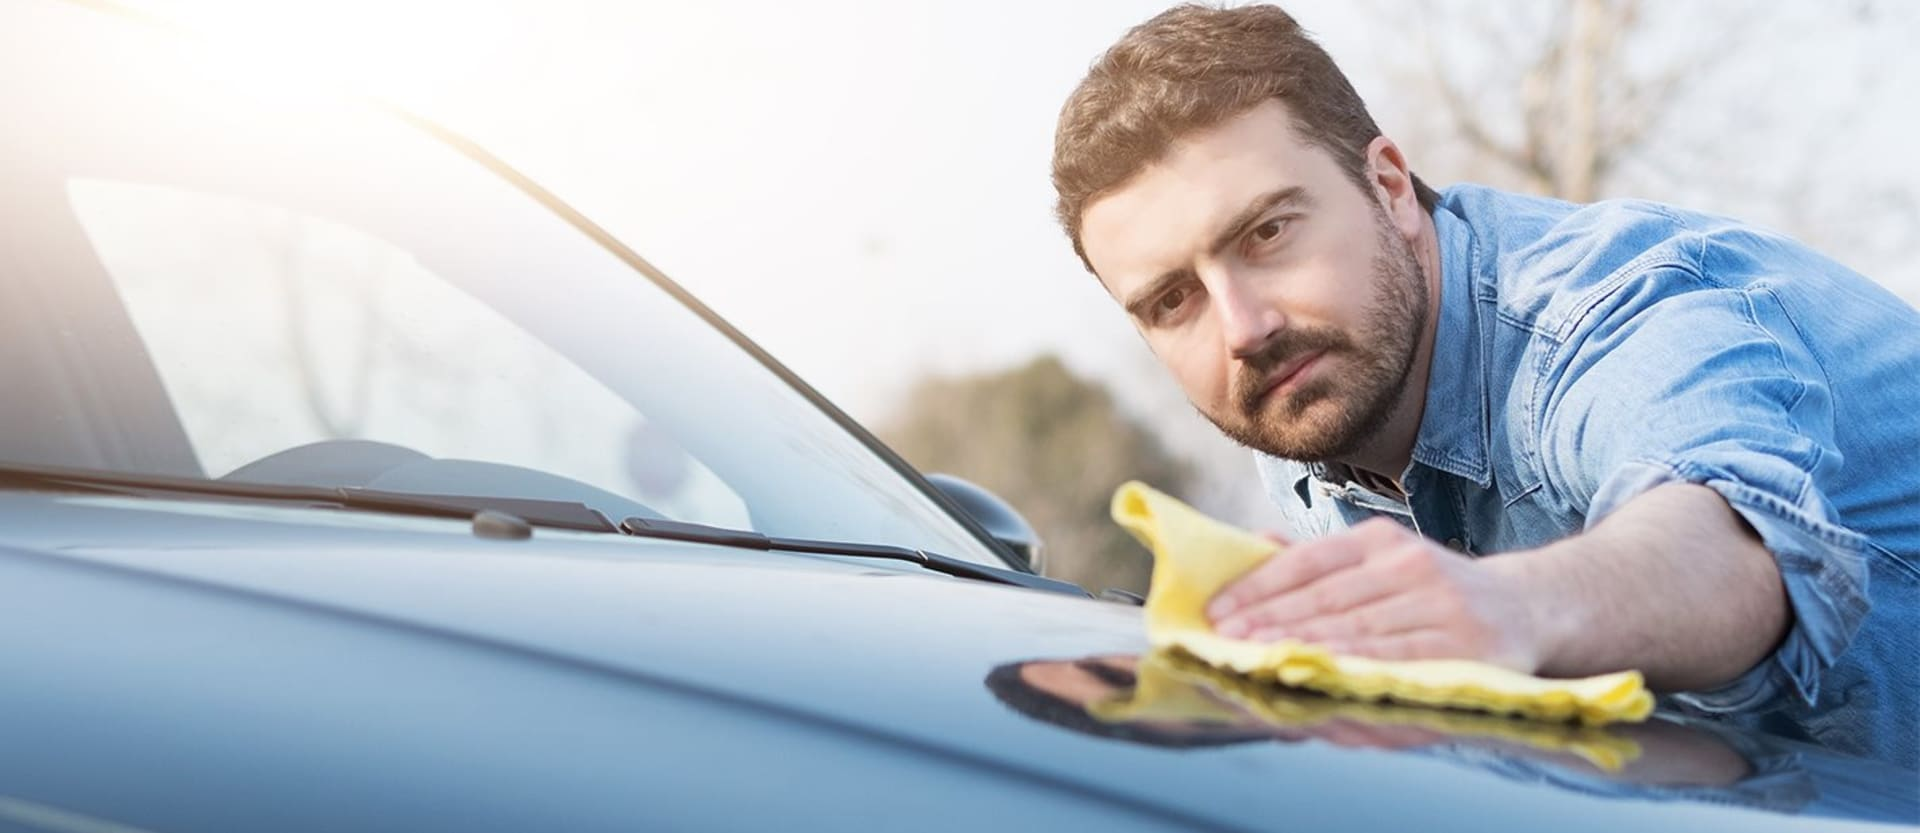 Waxing a car – the WhichCar guide